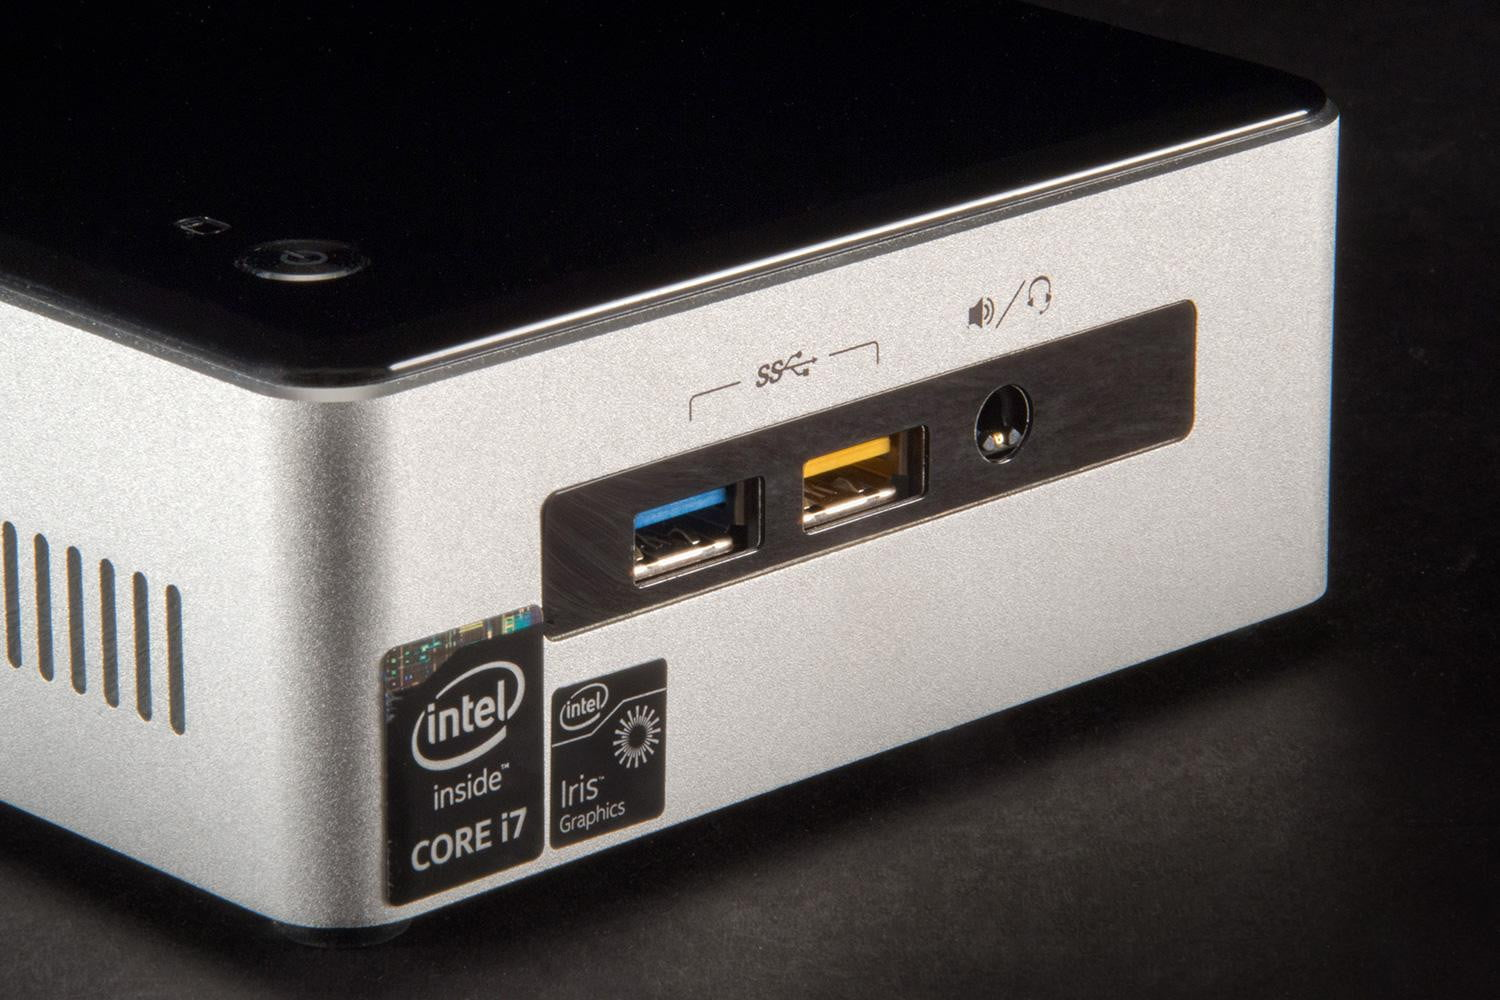 intel nuc core i7 review nuc5i7ryh digital trends. Black Bedroom Furniture Sets. Home Design Ideas